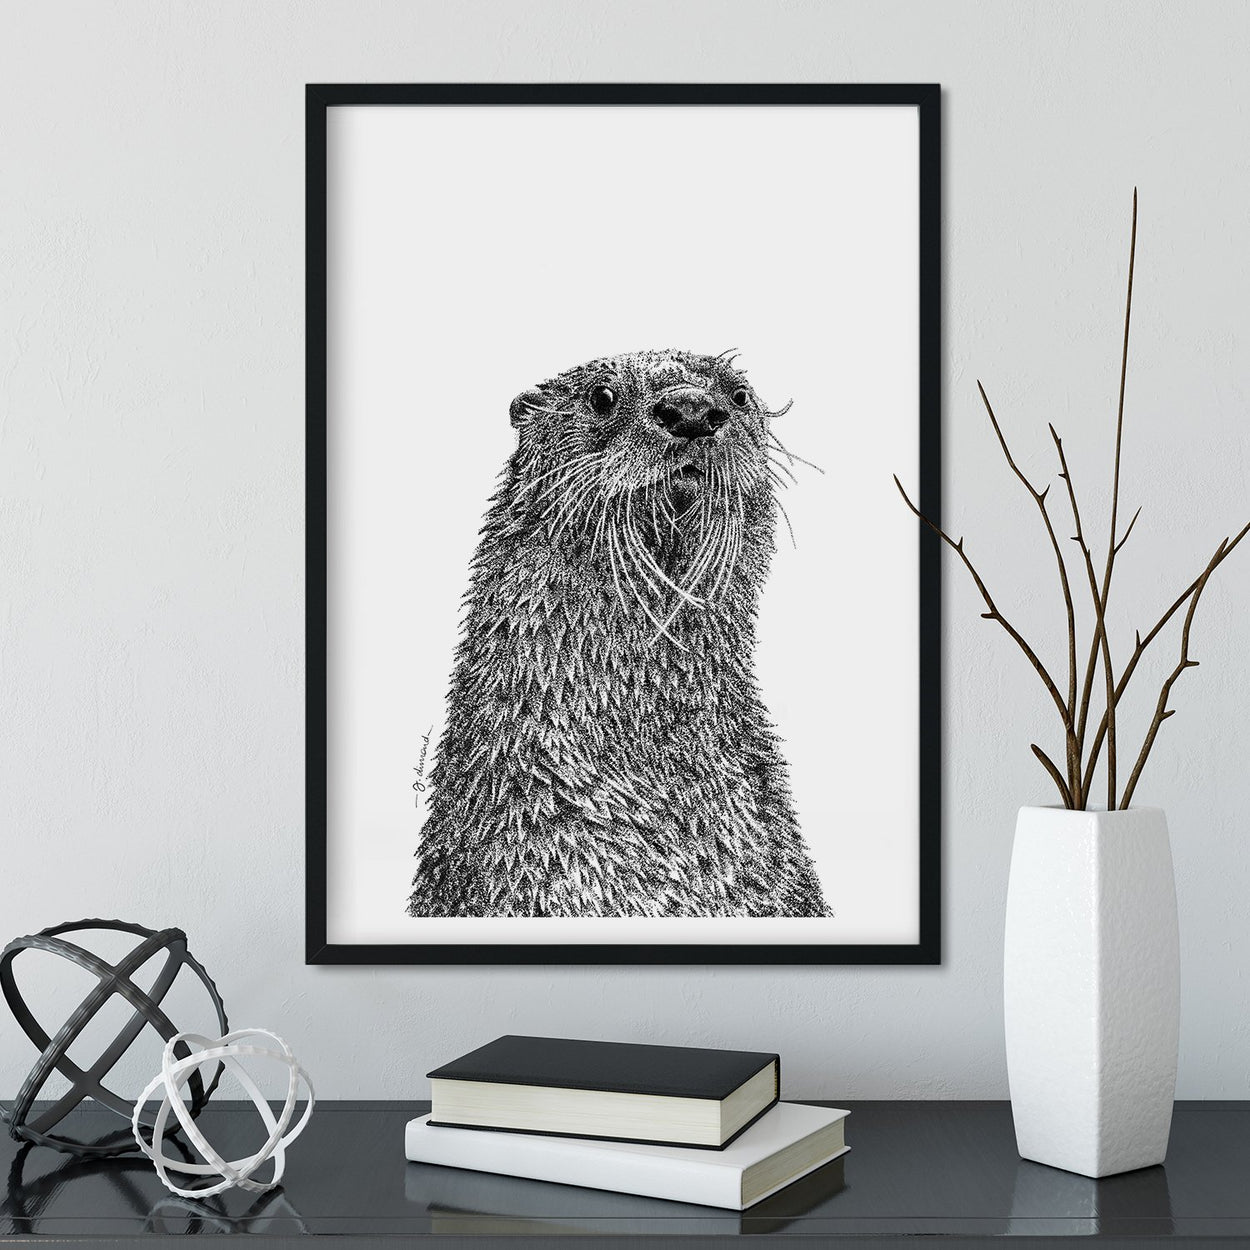 Otter Wall Art Framed - The Thriving Wild